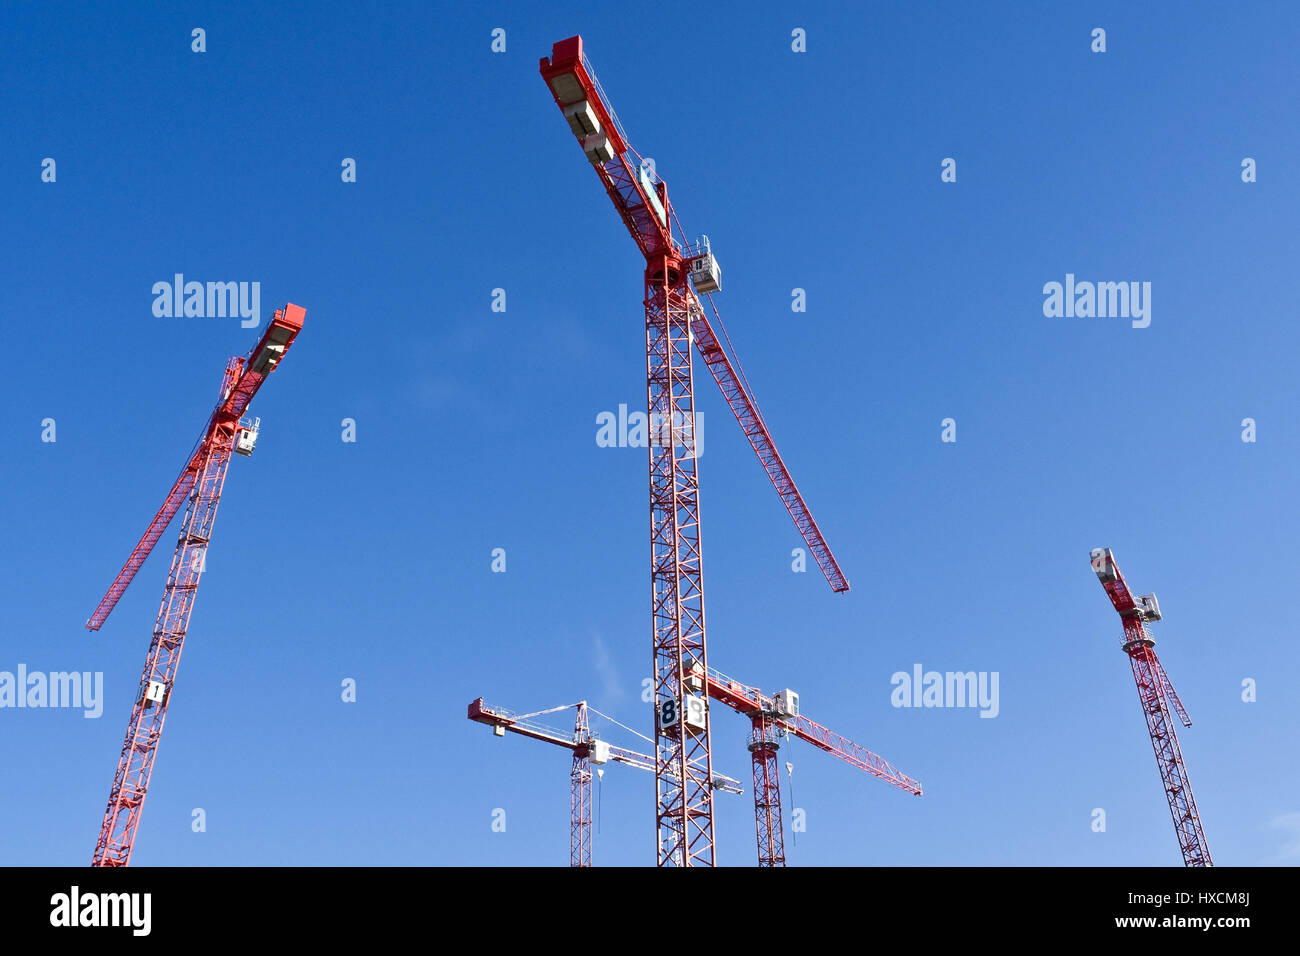 Construction cranes, Baukraene - Stock Image